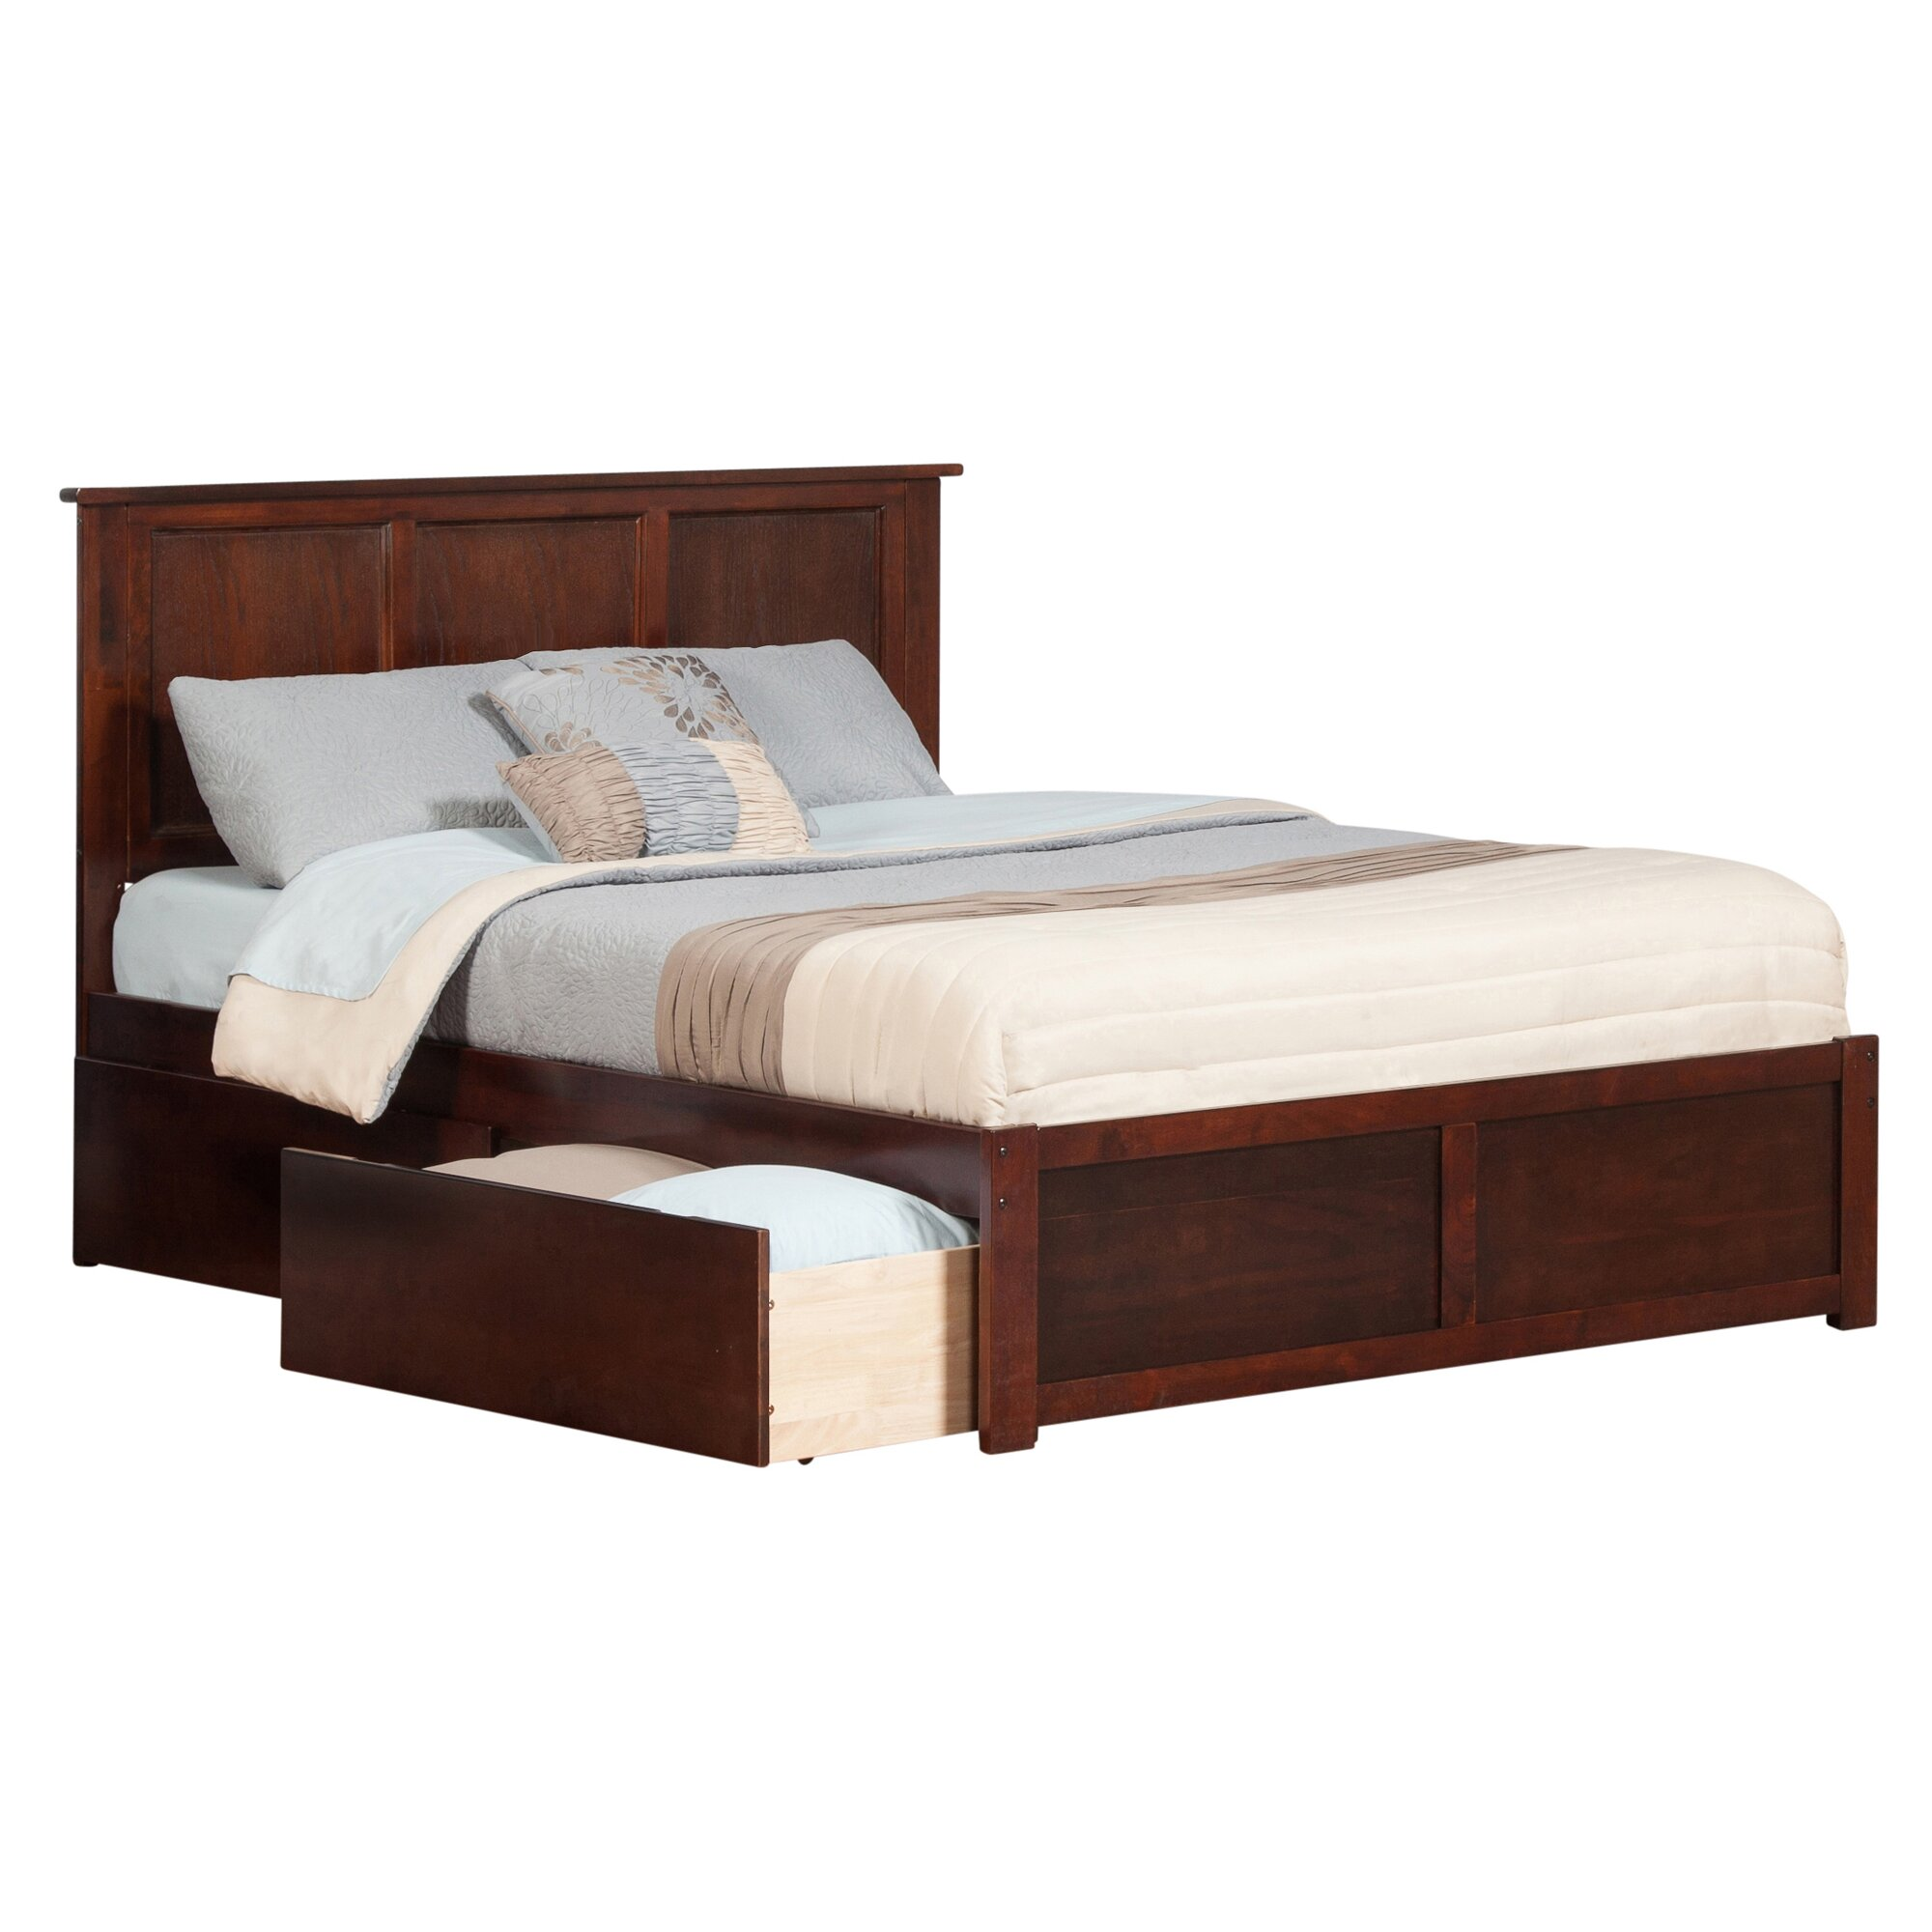 Andover mills marjorie king storage platform bed reviews Platform king bed